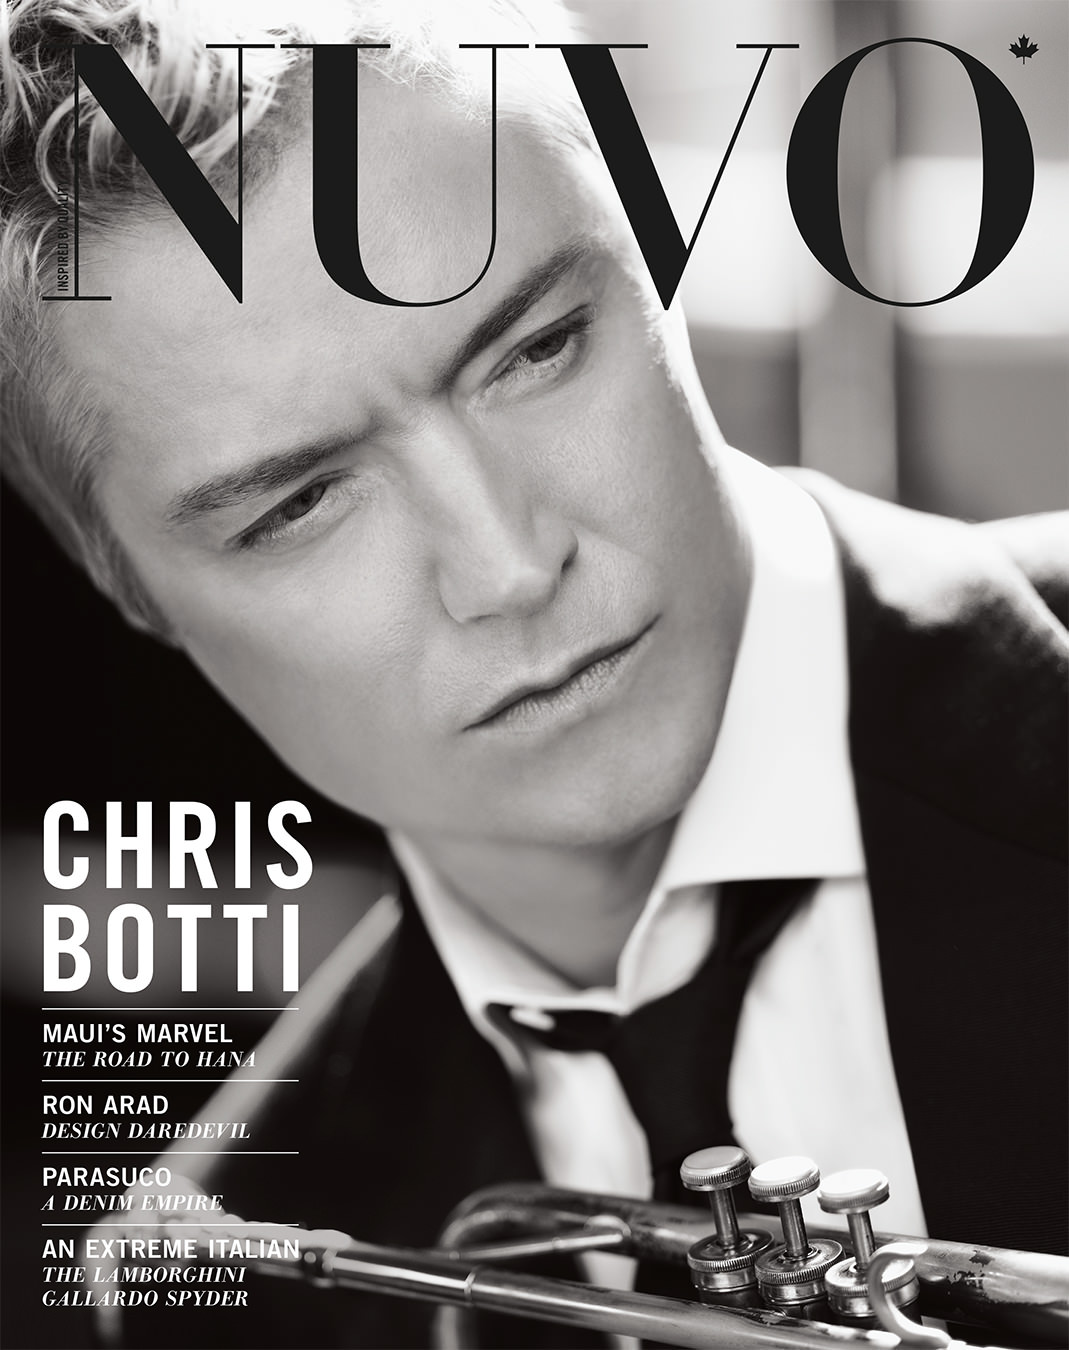 NUVO Magazine Spring 2010 Cover featuring Chris Botti